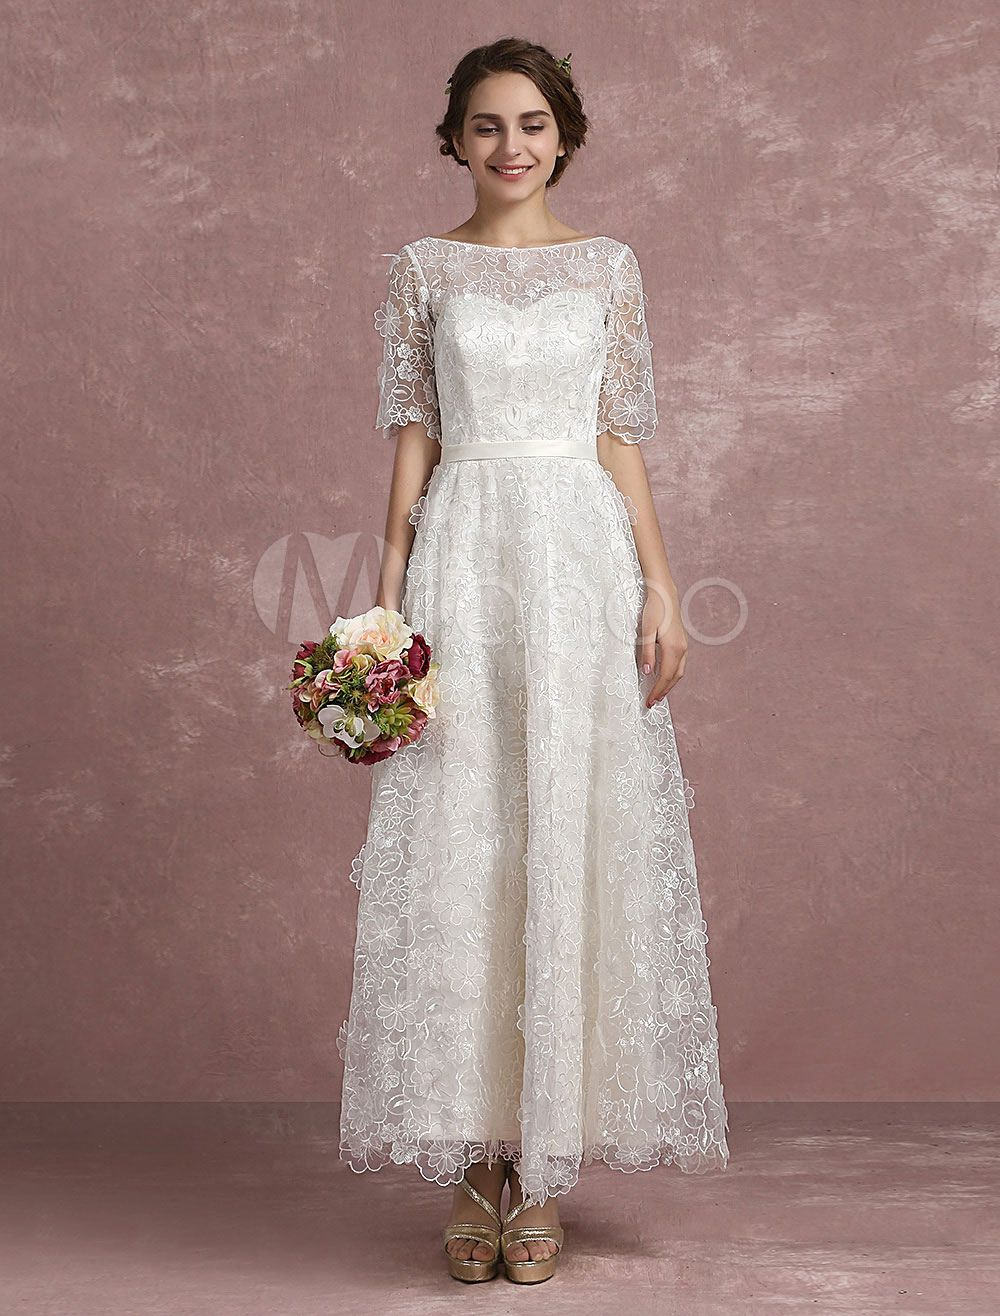 Summer wedding dresses lace illusion sweetheart beach bridal dress